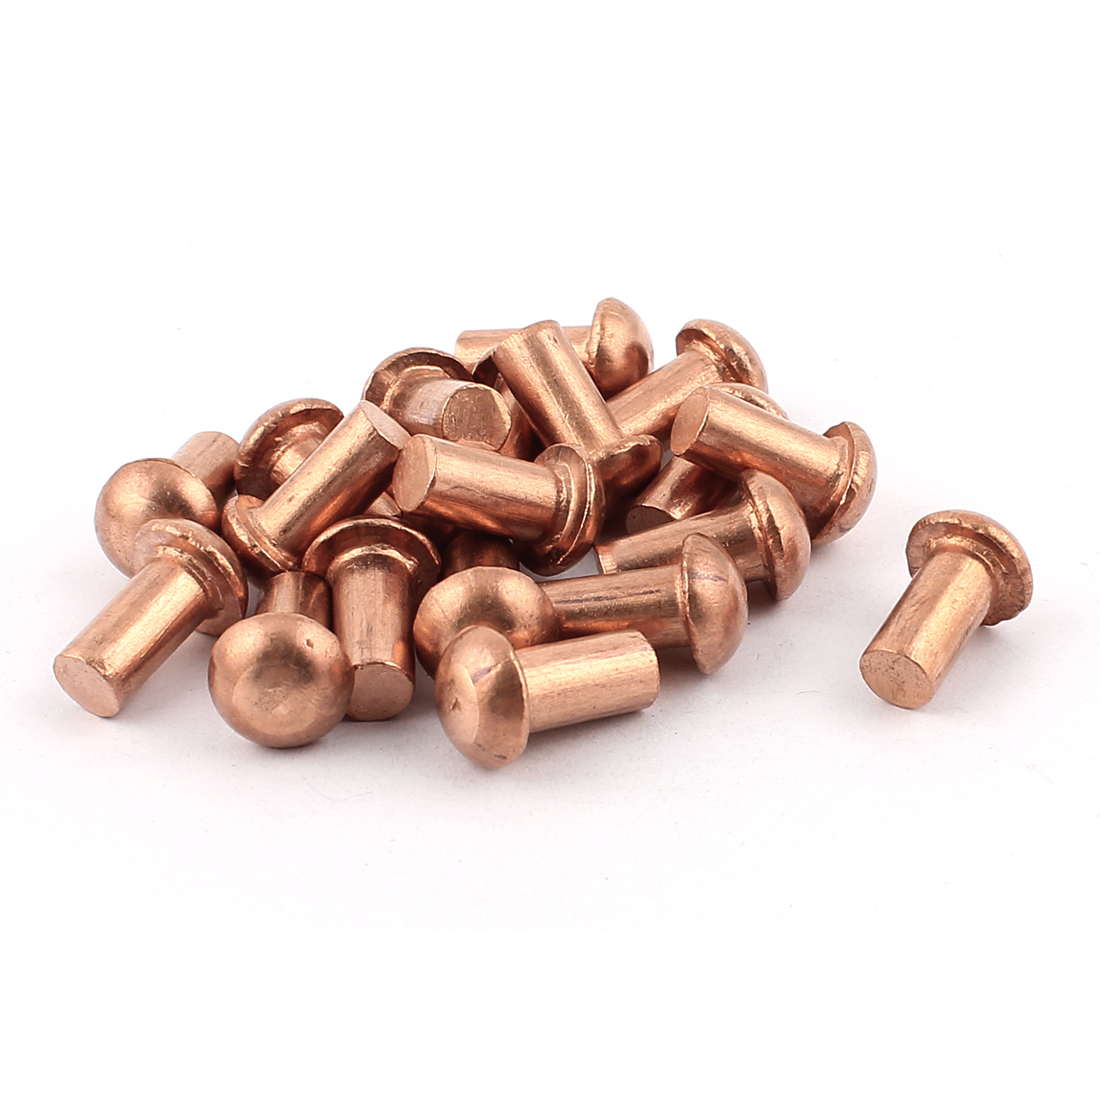 "20 Pcs 5/16"" Diameter 5/8"" L Shank Copper Round Head Solid Rivets Fasteners"